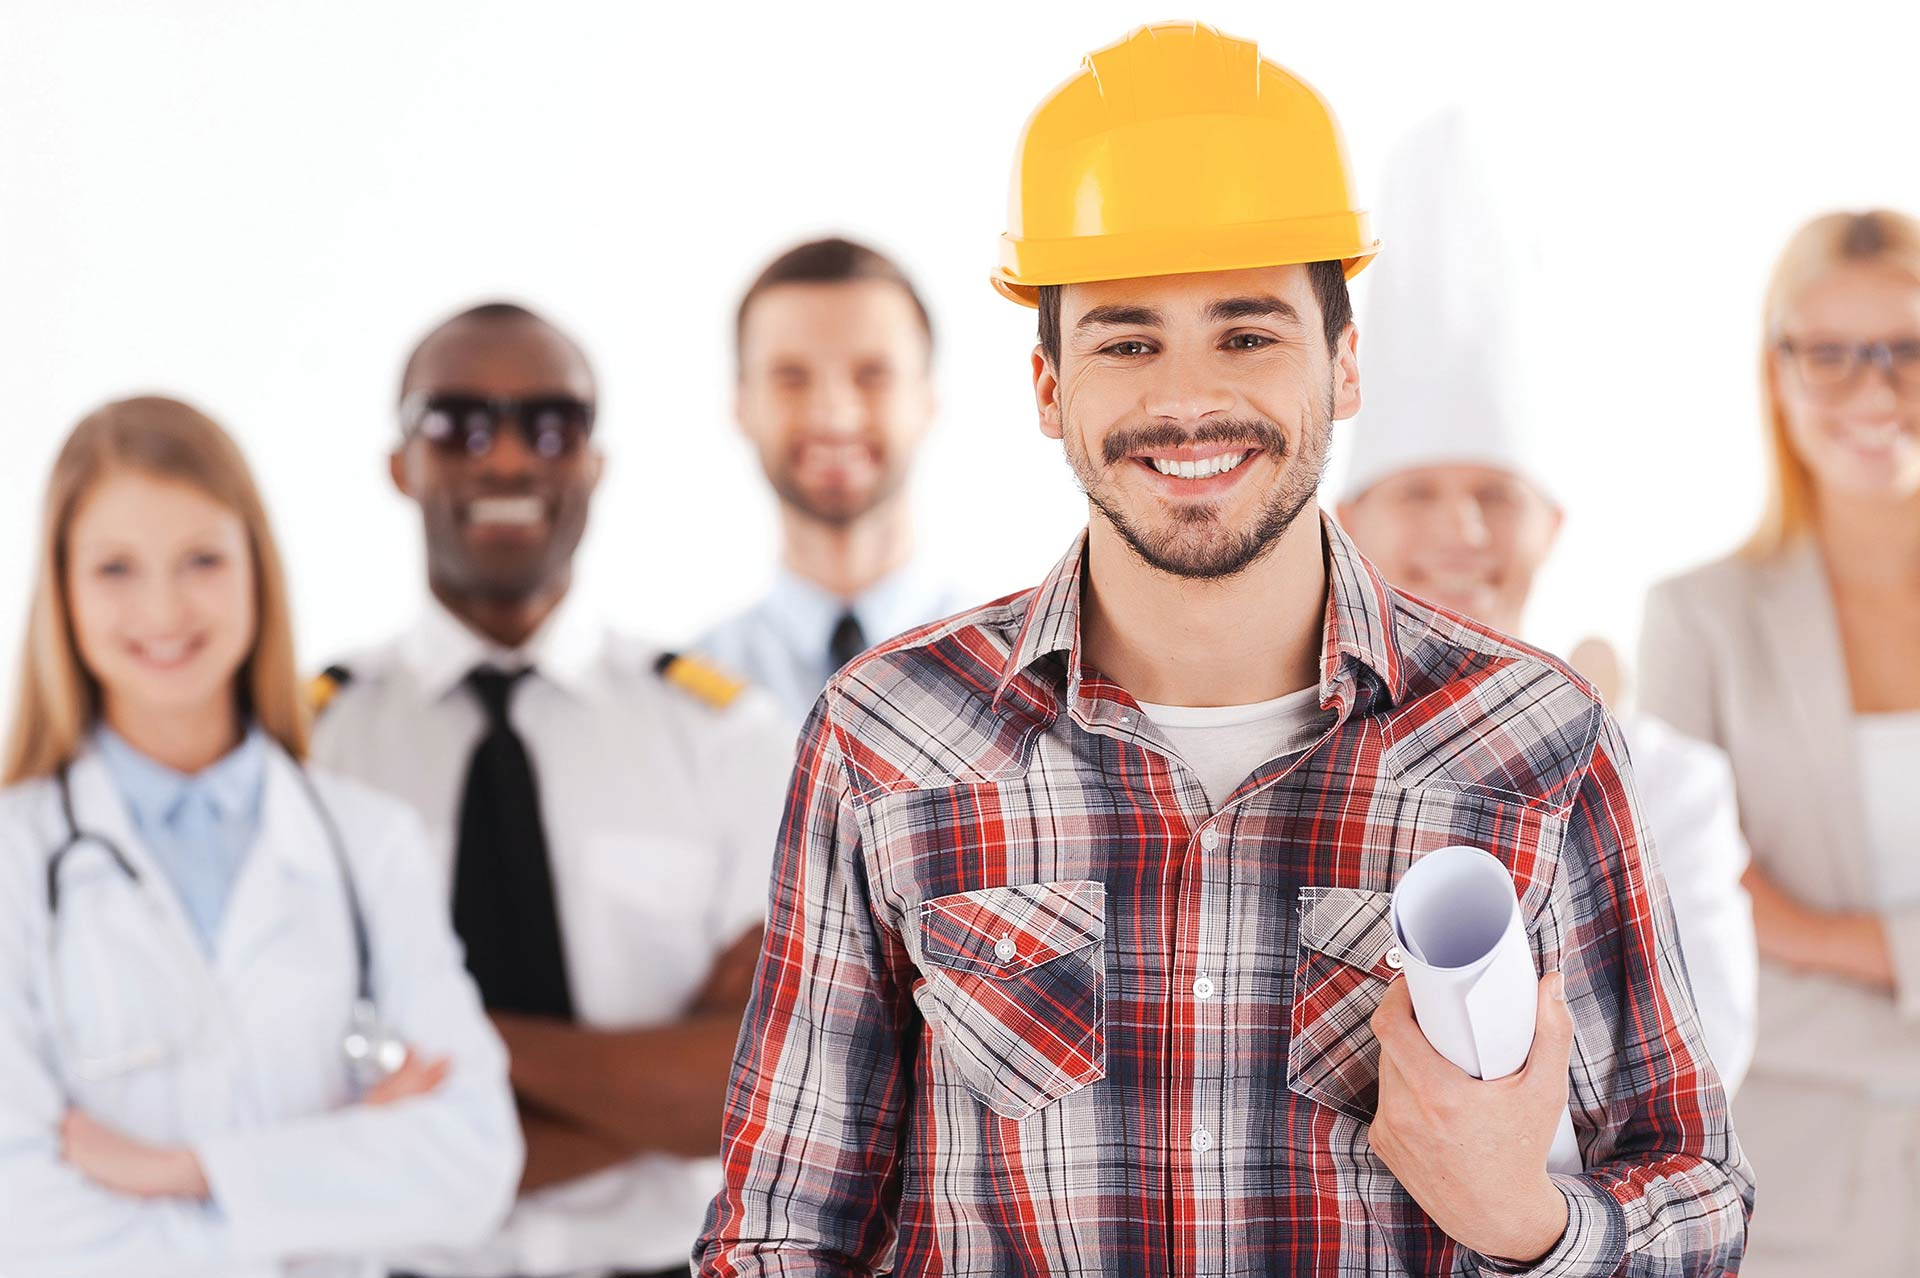 Man smiling wearing hard hat in front of group of union workers